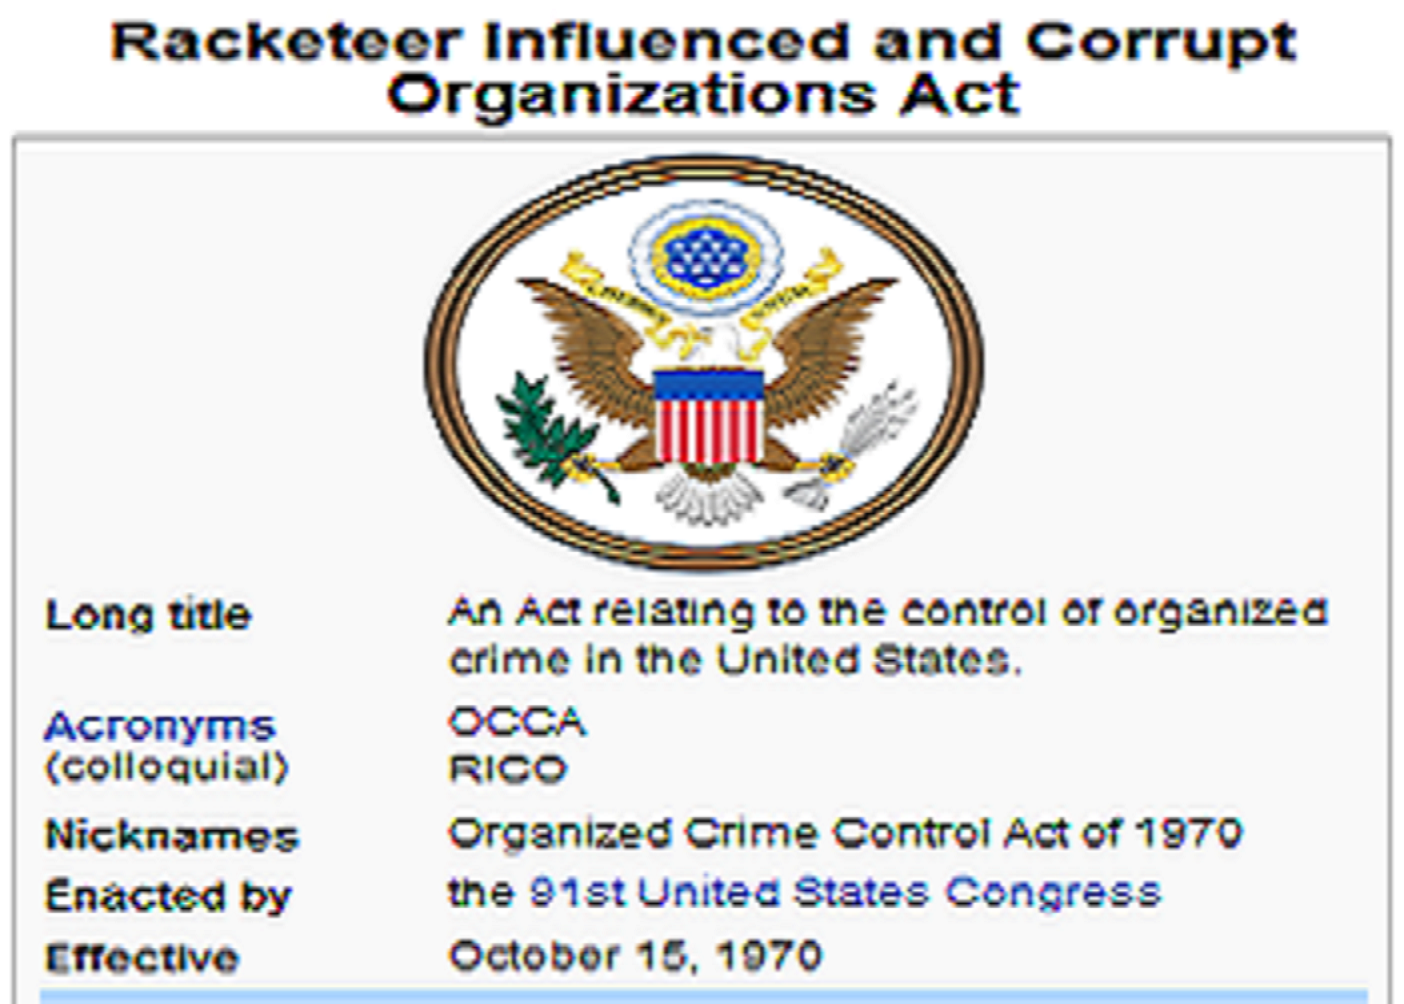 an analysis of the congress passed the racketeer influenced and corrupt organisations act Passed the house on october 7, 1970 signed into law by president richard nixon on october 15, 1970 the organized crime control act of 1970 ( publ 91-452 , 84 stat 922 october 15, 1970), was an act of congress sponsored by democratic senator john l mcclellan [1] and signed into law by us president richard nixon.